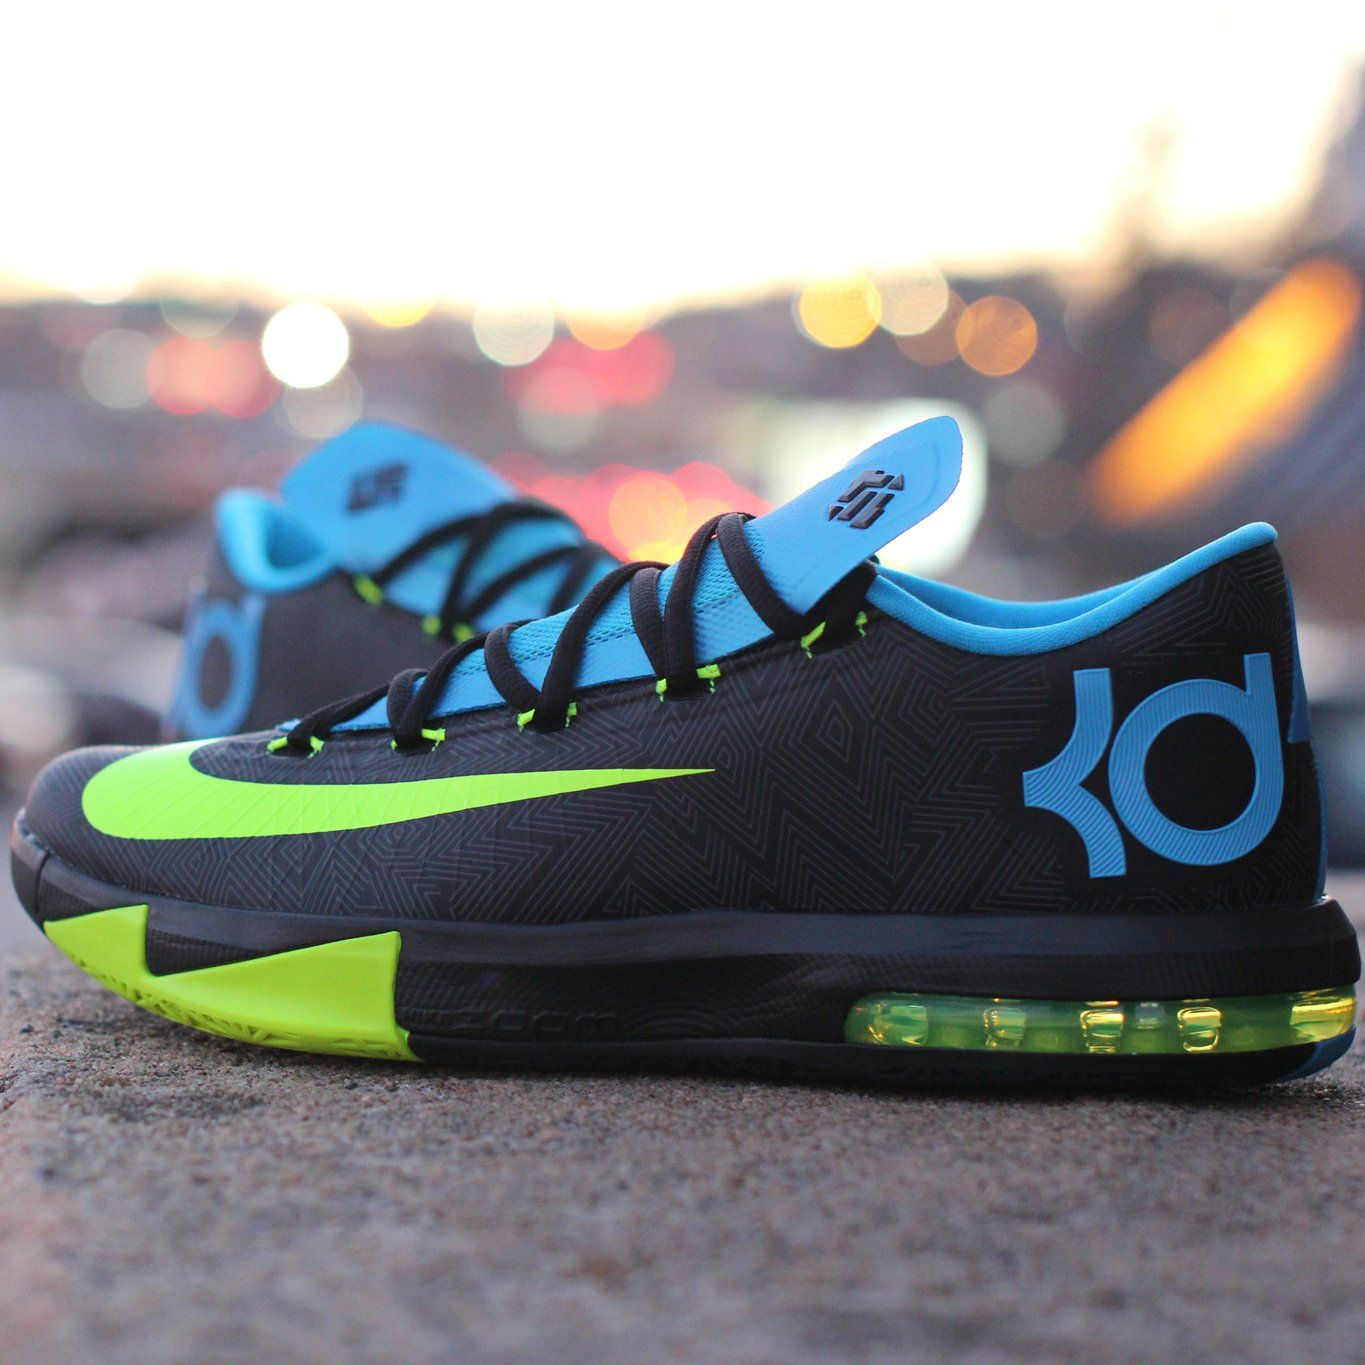 kevin durants signature basketball shoe featuring a